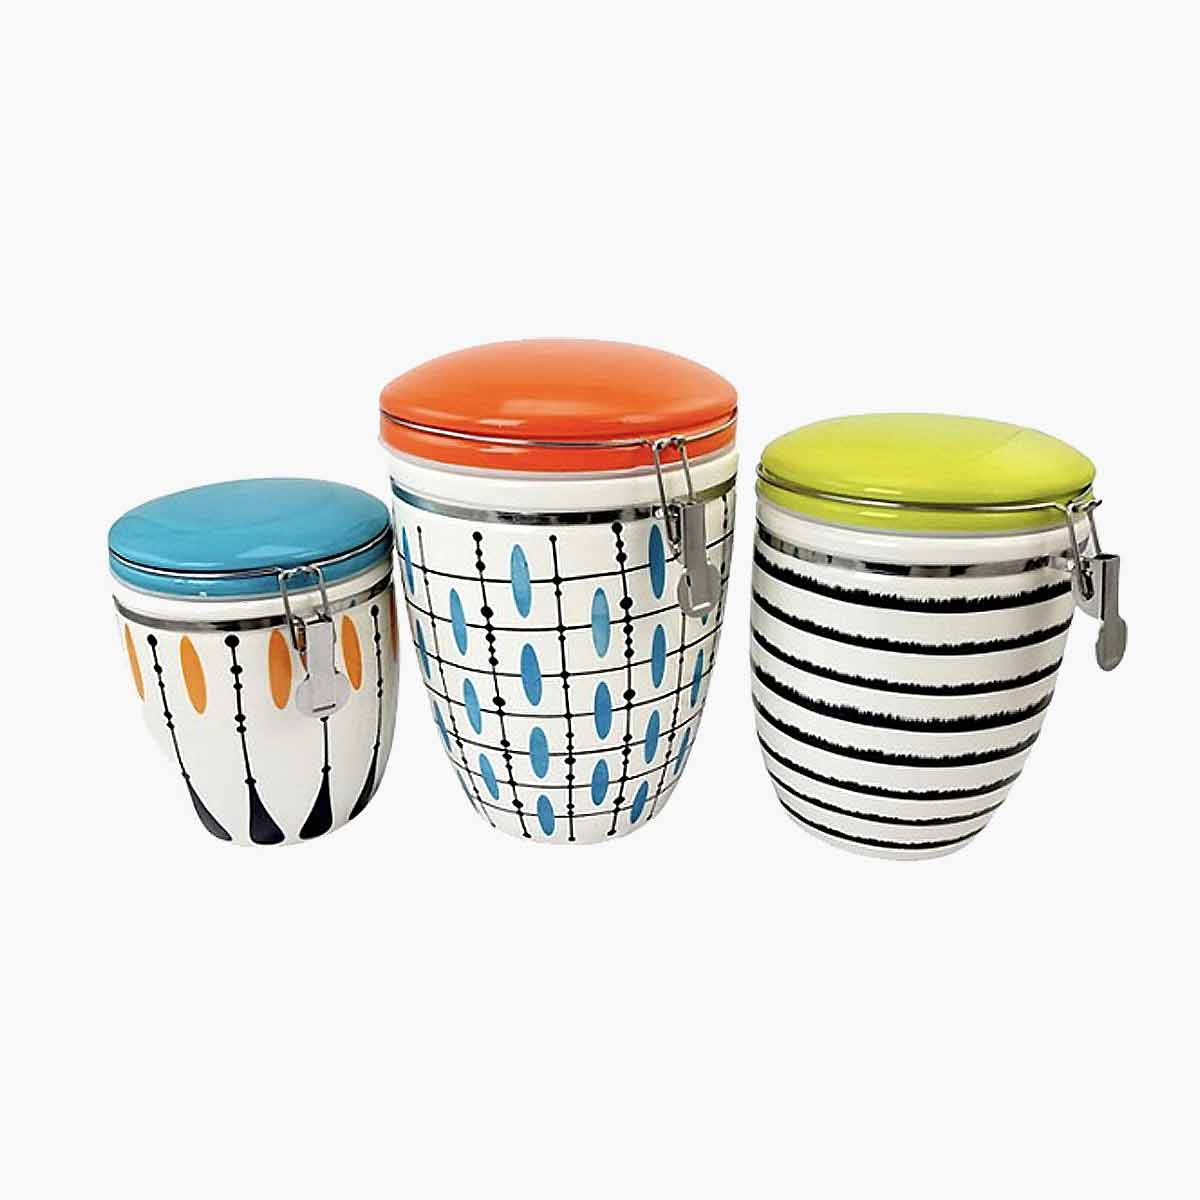 A 3 piece kitchen canister set with retro patterns.